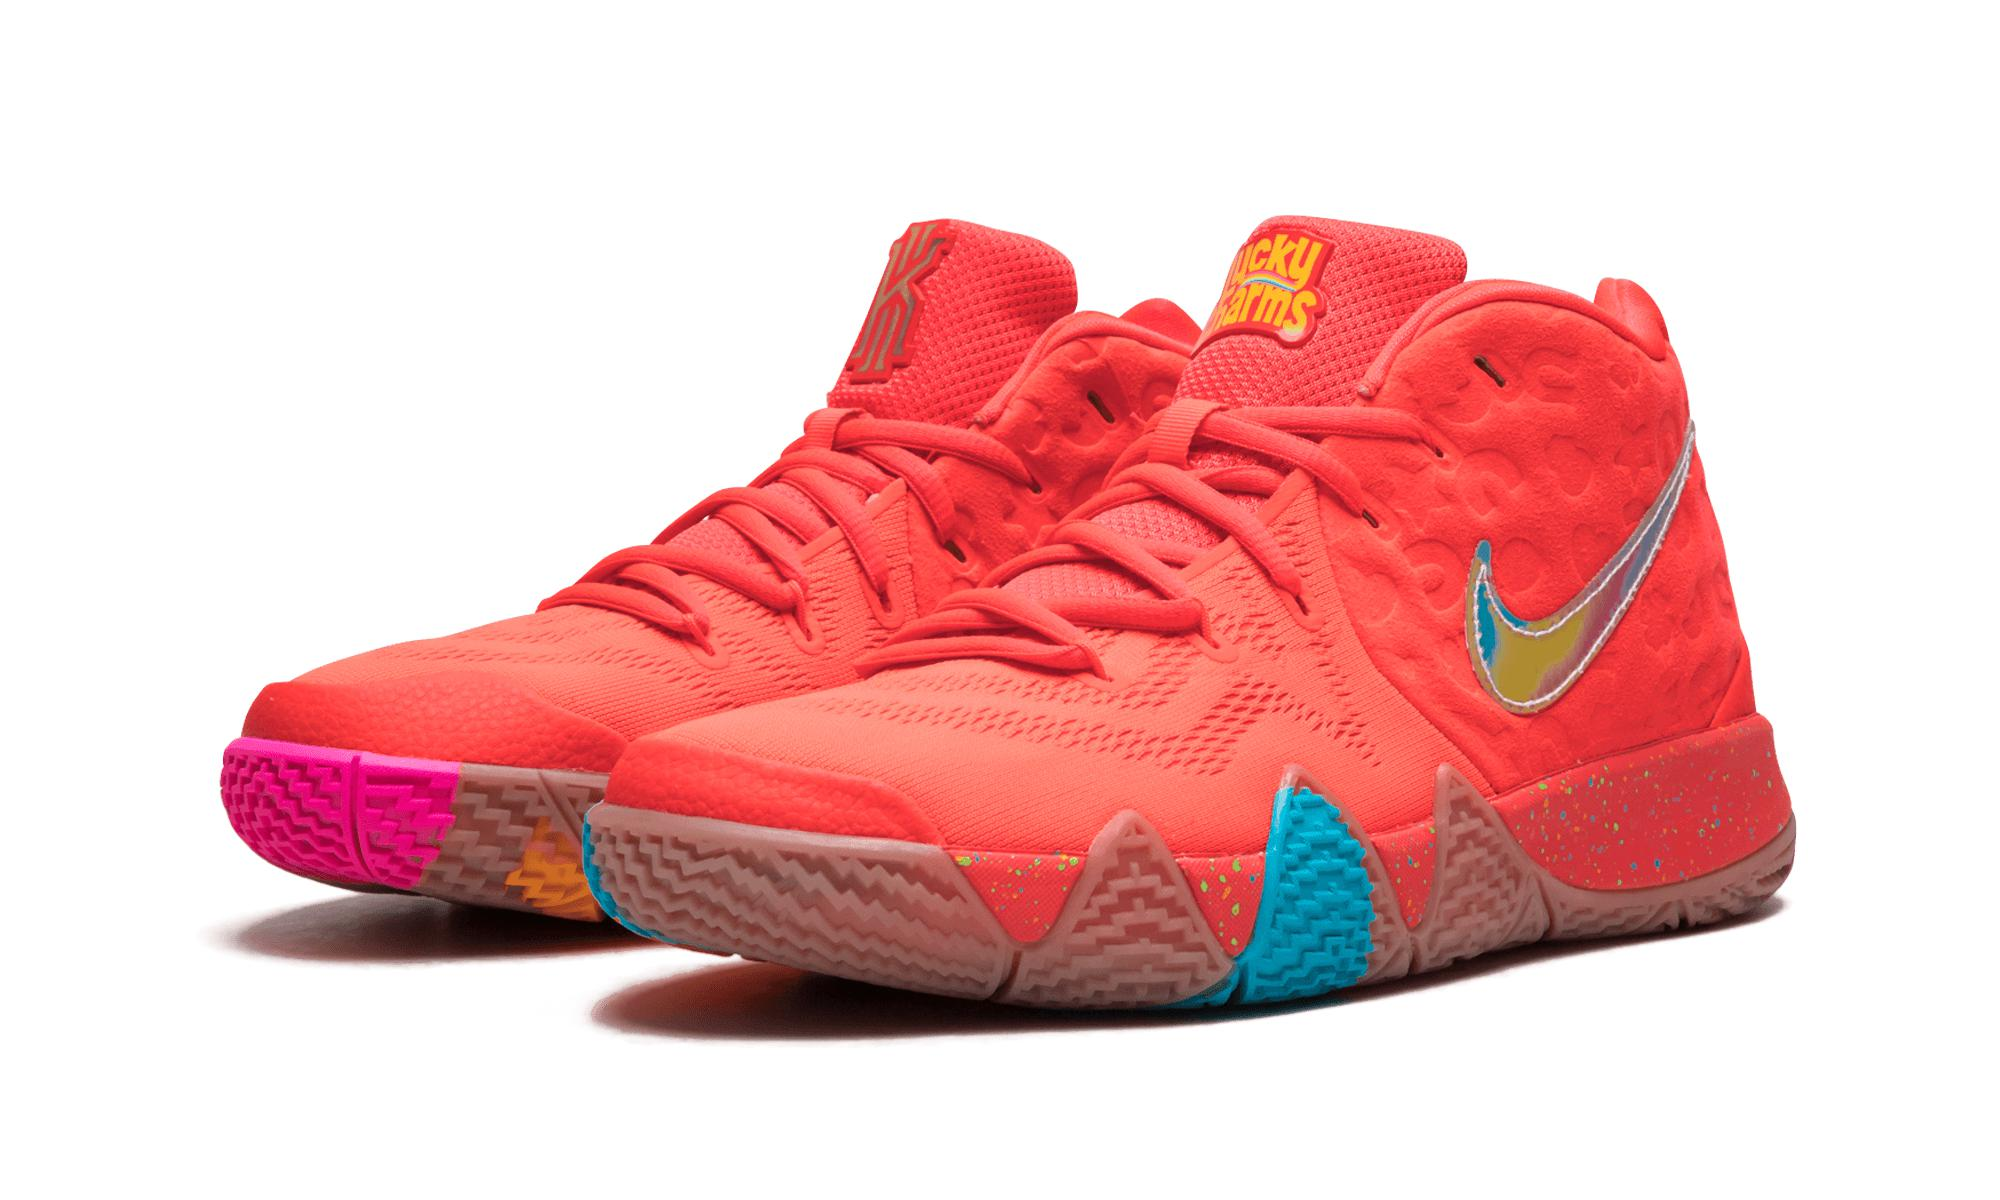 reputable site 370d3 5d644 discount kyrie 4 lucky charms gs 1e0d5 6b181